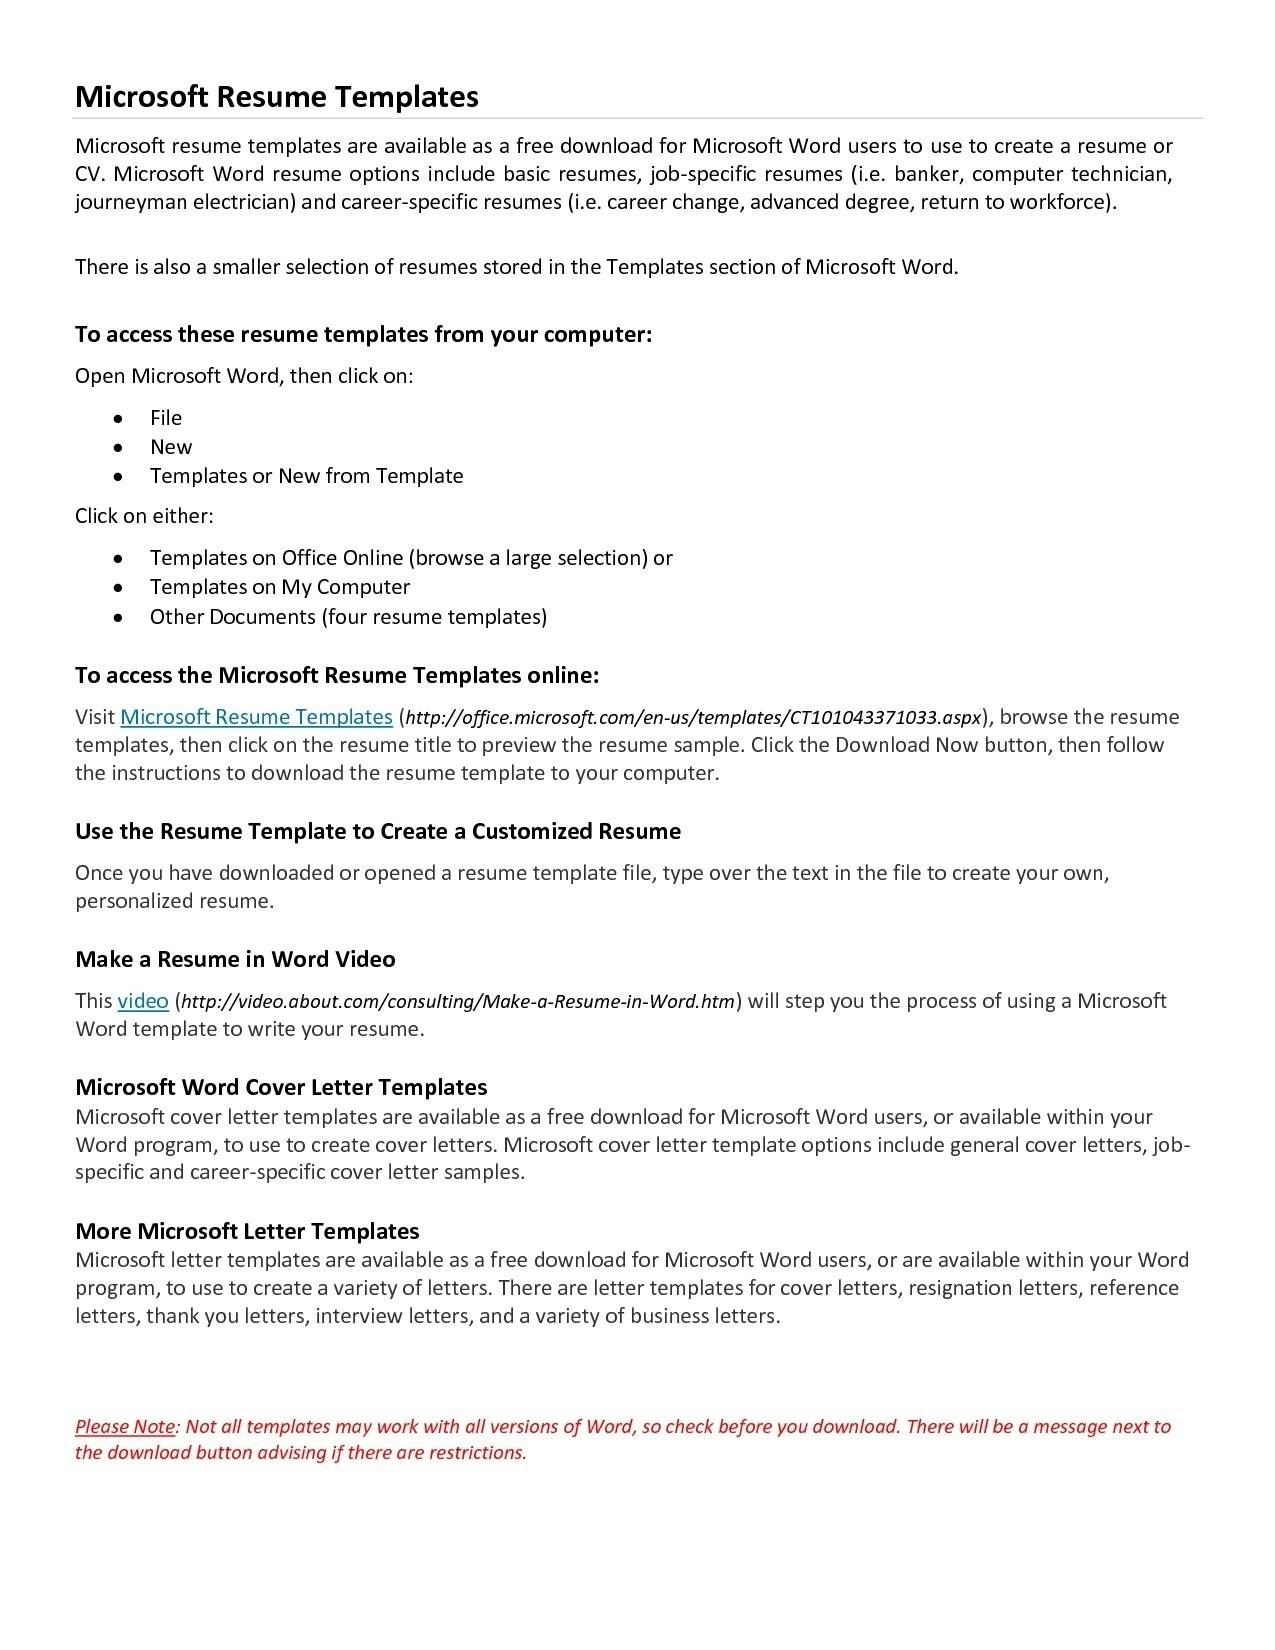 Fedex Resume Paper - Fedex Resume Paper Nmdnconference Example Resume and Cover